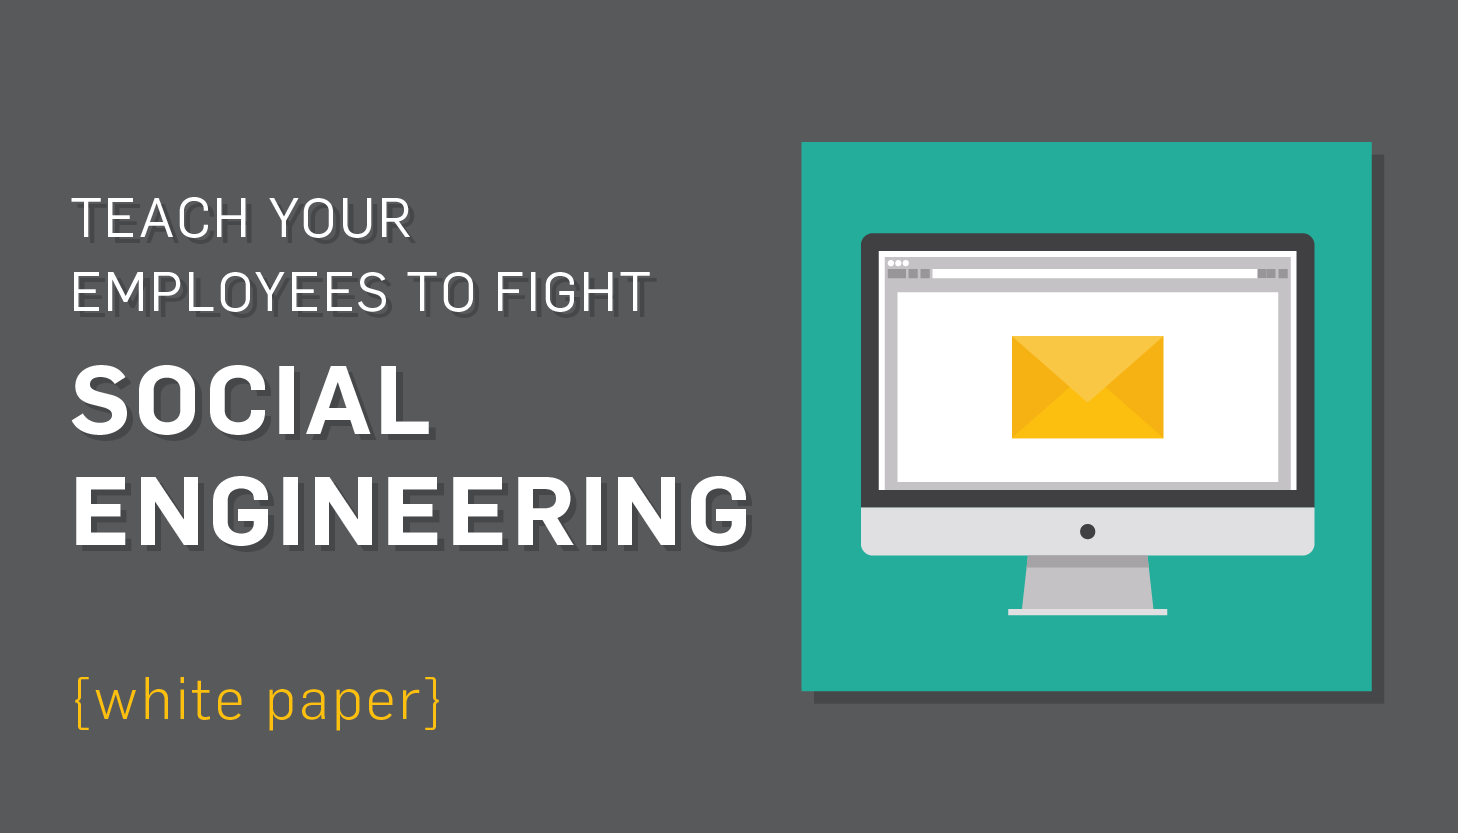 Social Engineering Training: What Your Employees Should Know